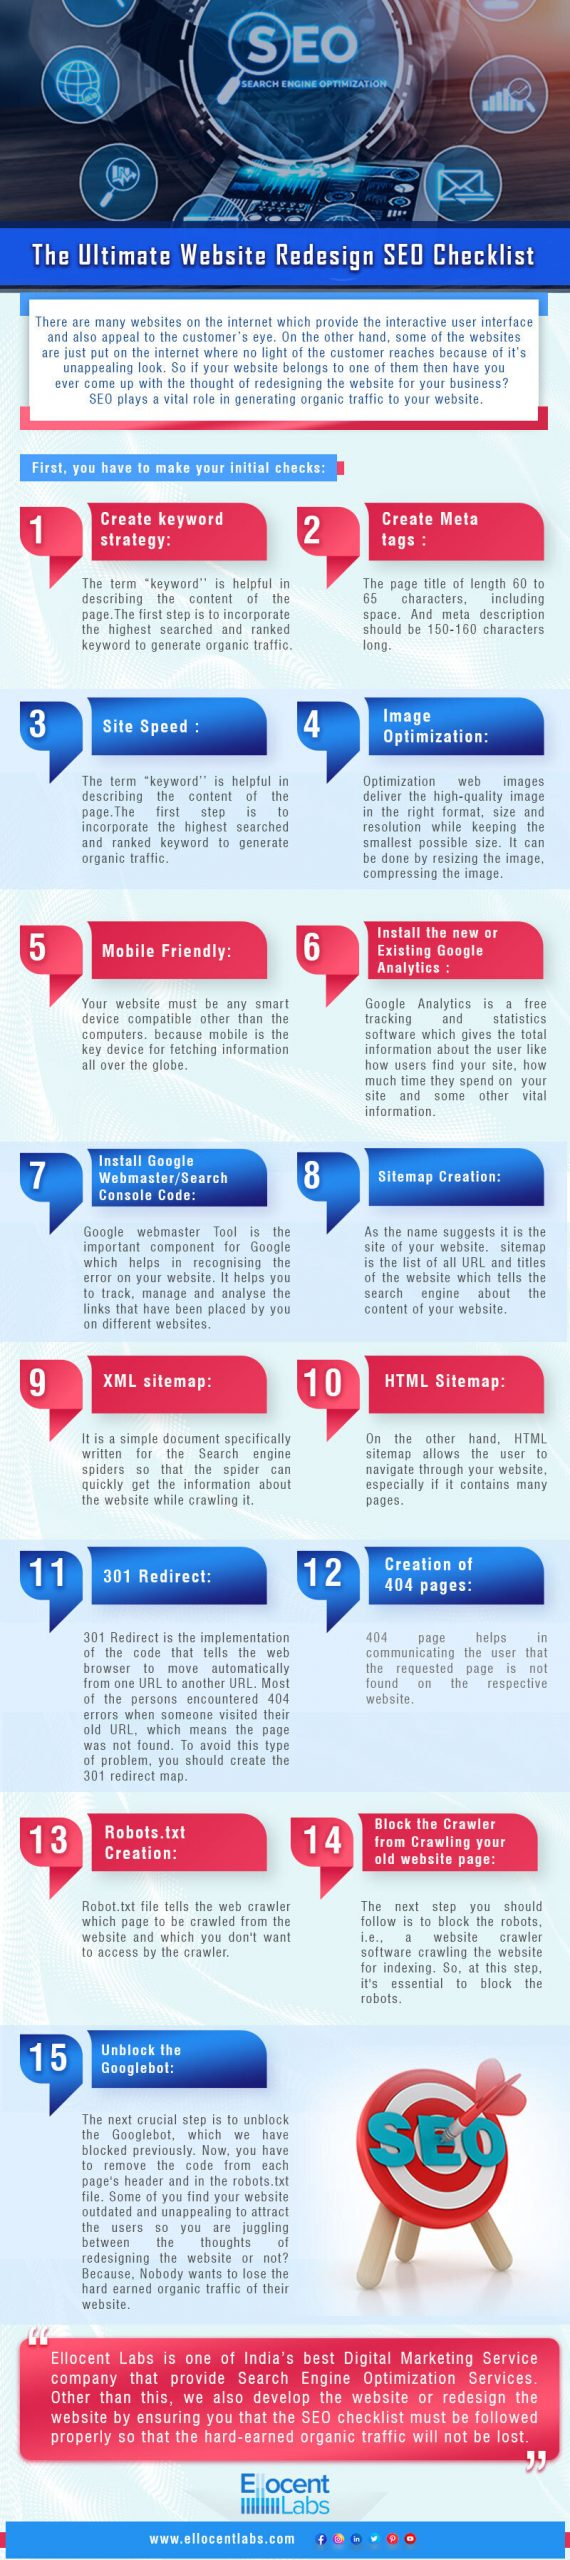 The Ultimate Website Redesign SEO Checklist (Infographics)